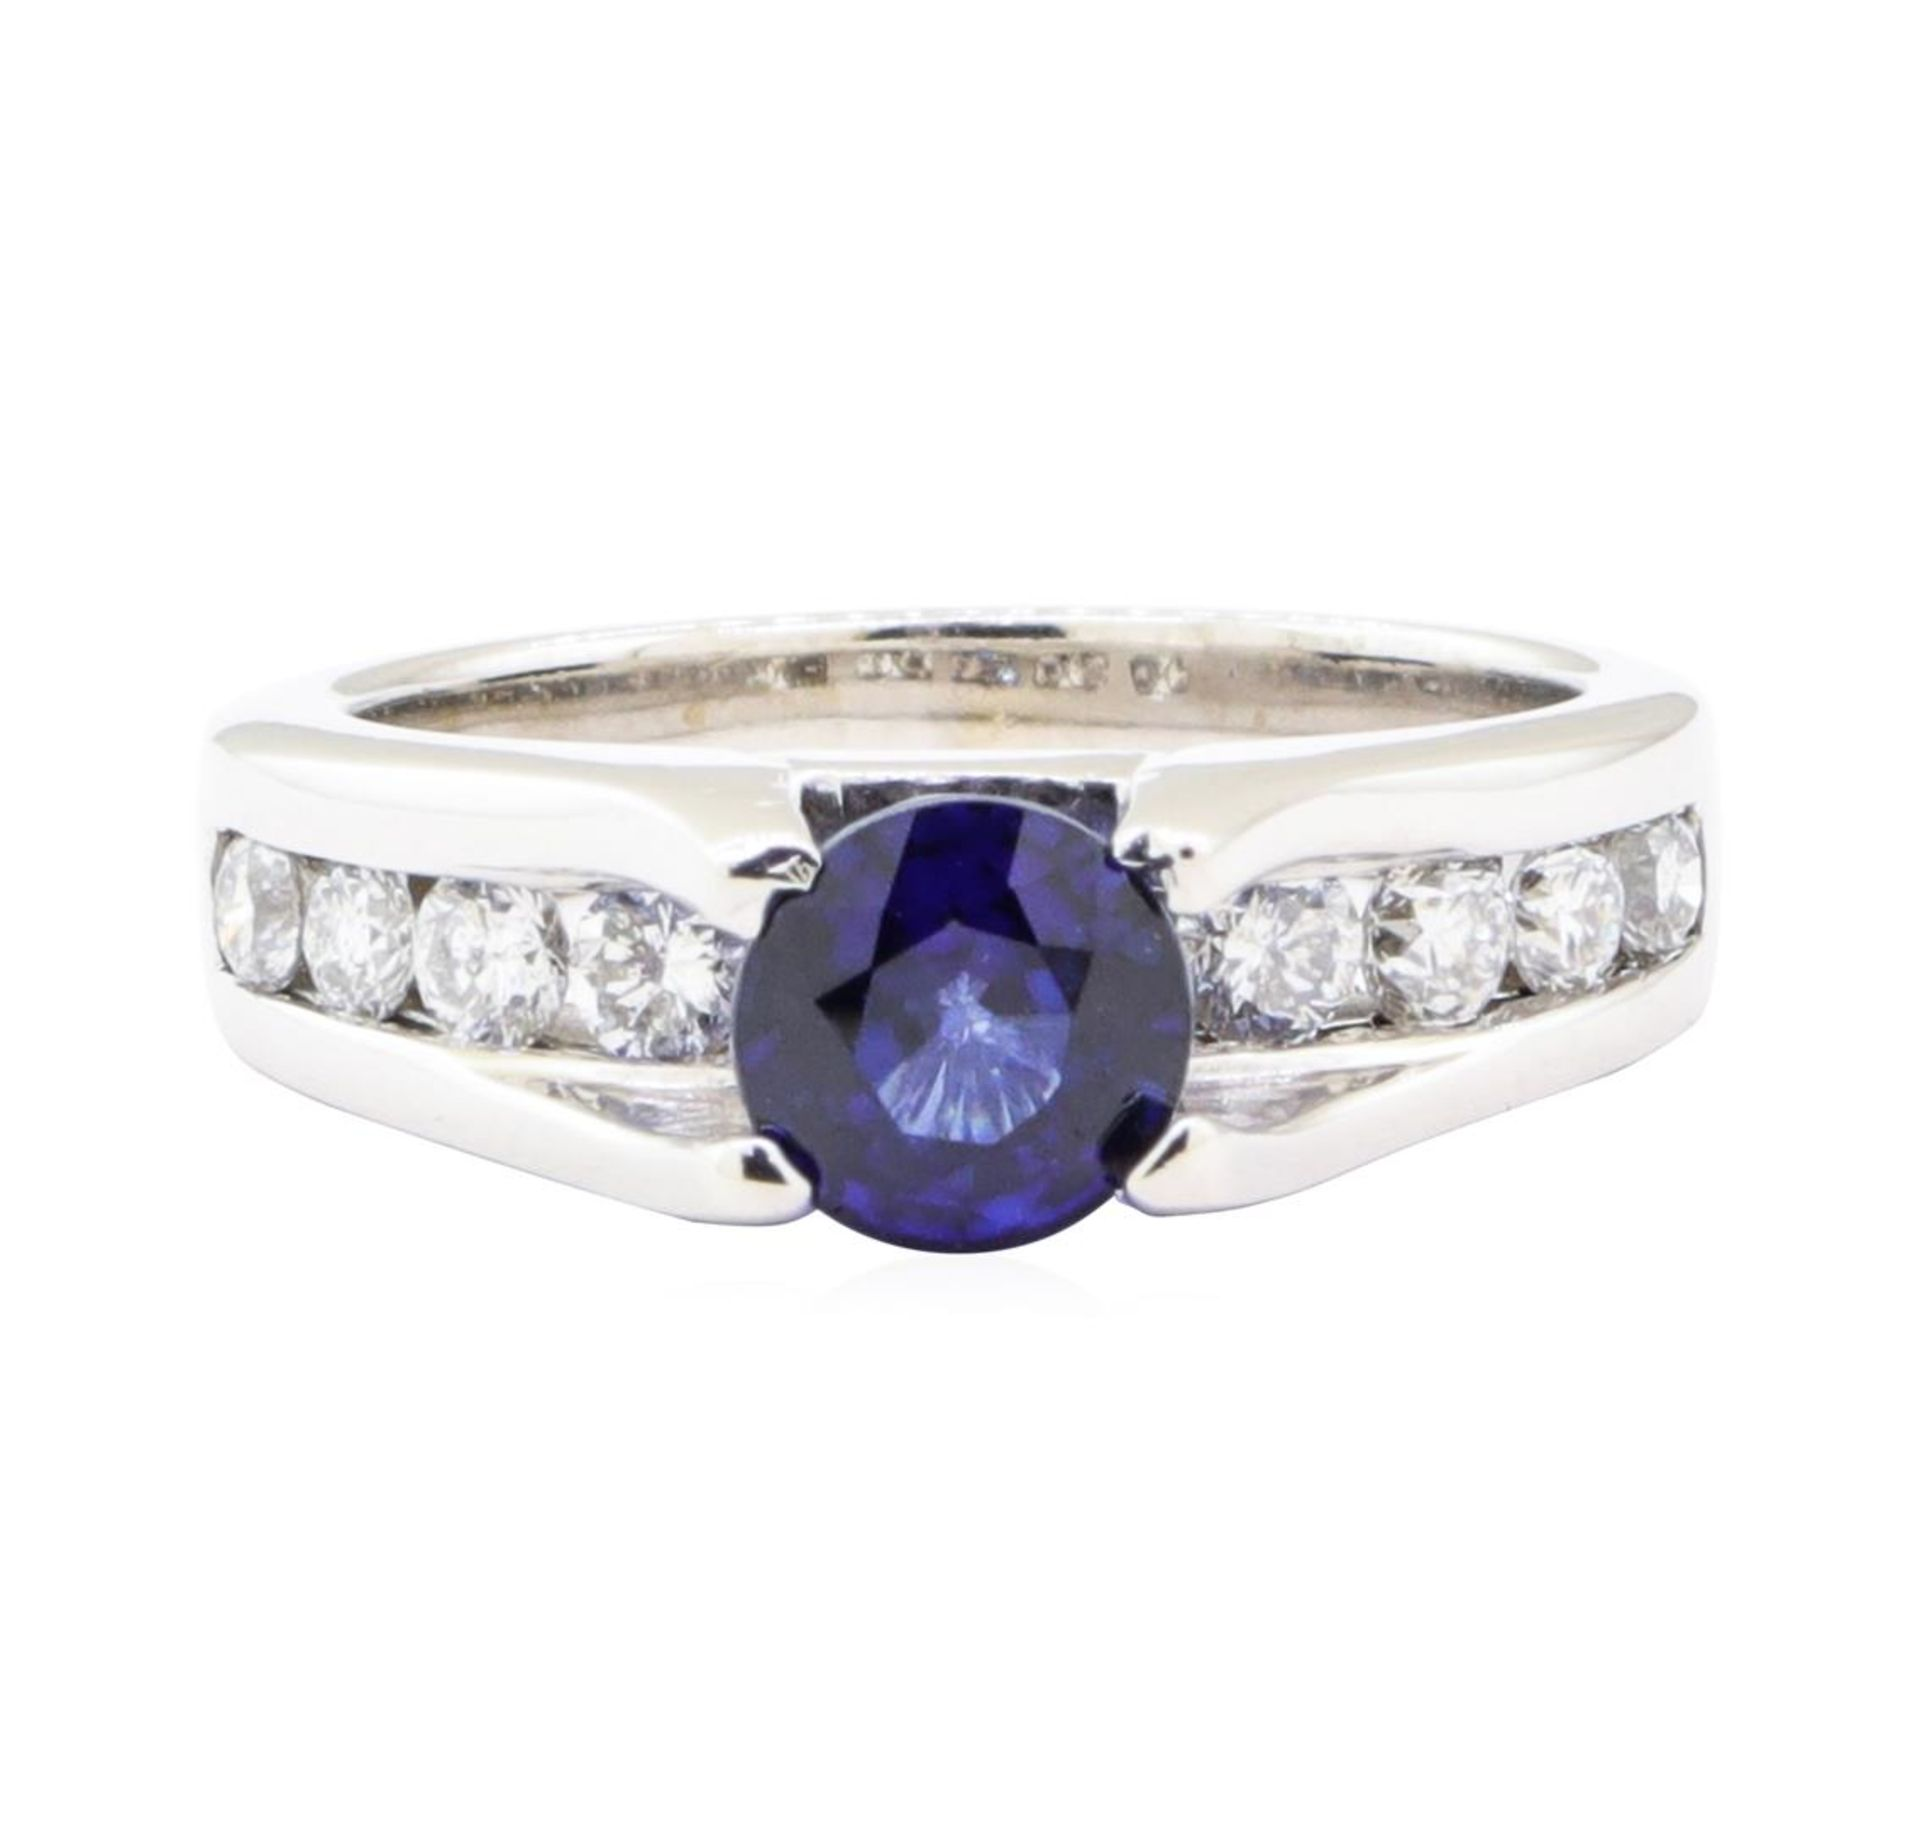 2.05ctw Sapphire and Diamond Ring - 14KT White Gold - Image 2 of 4